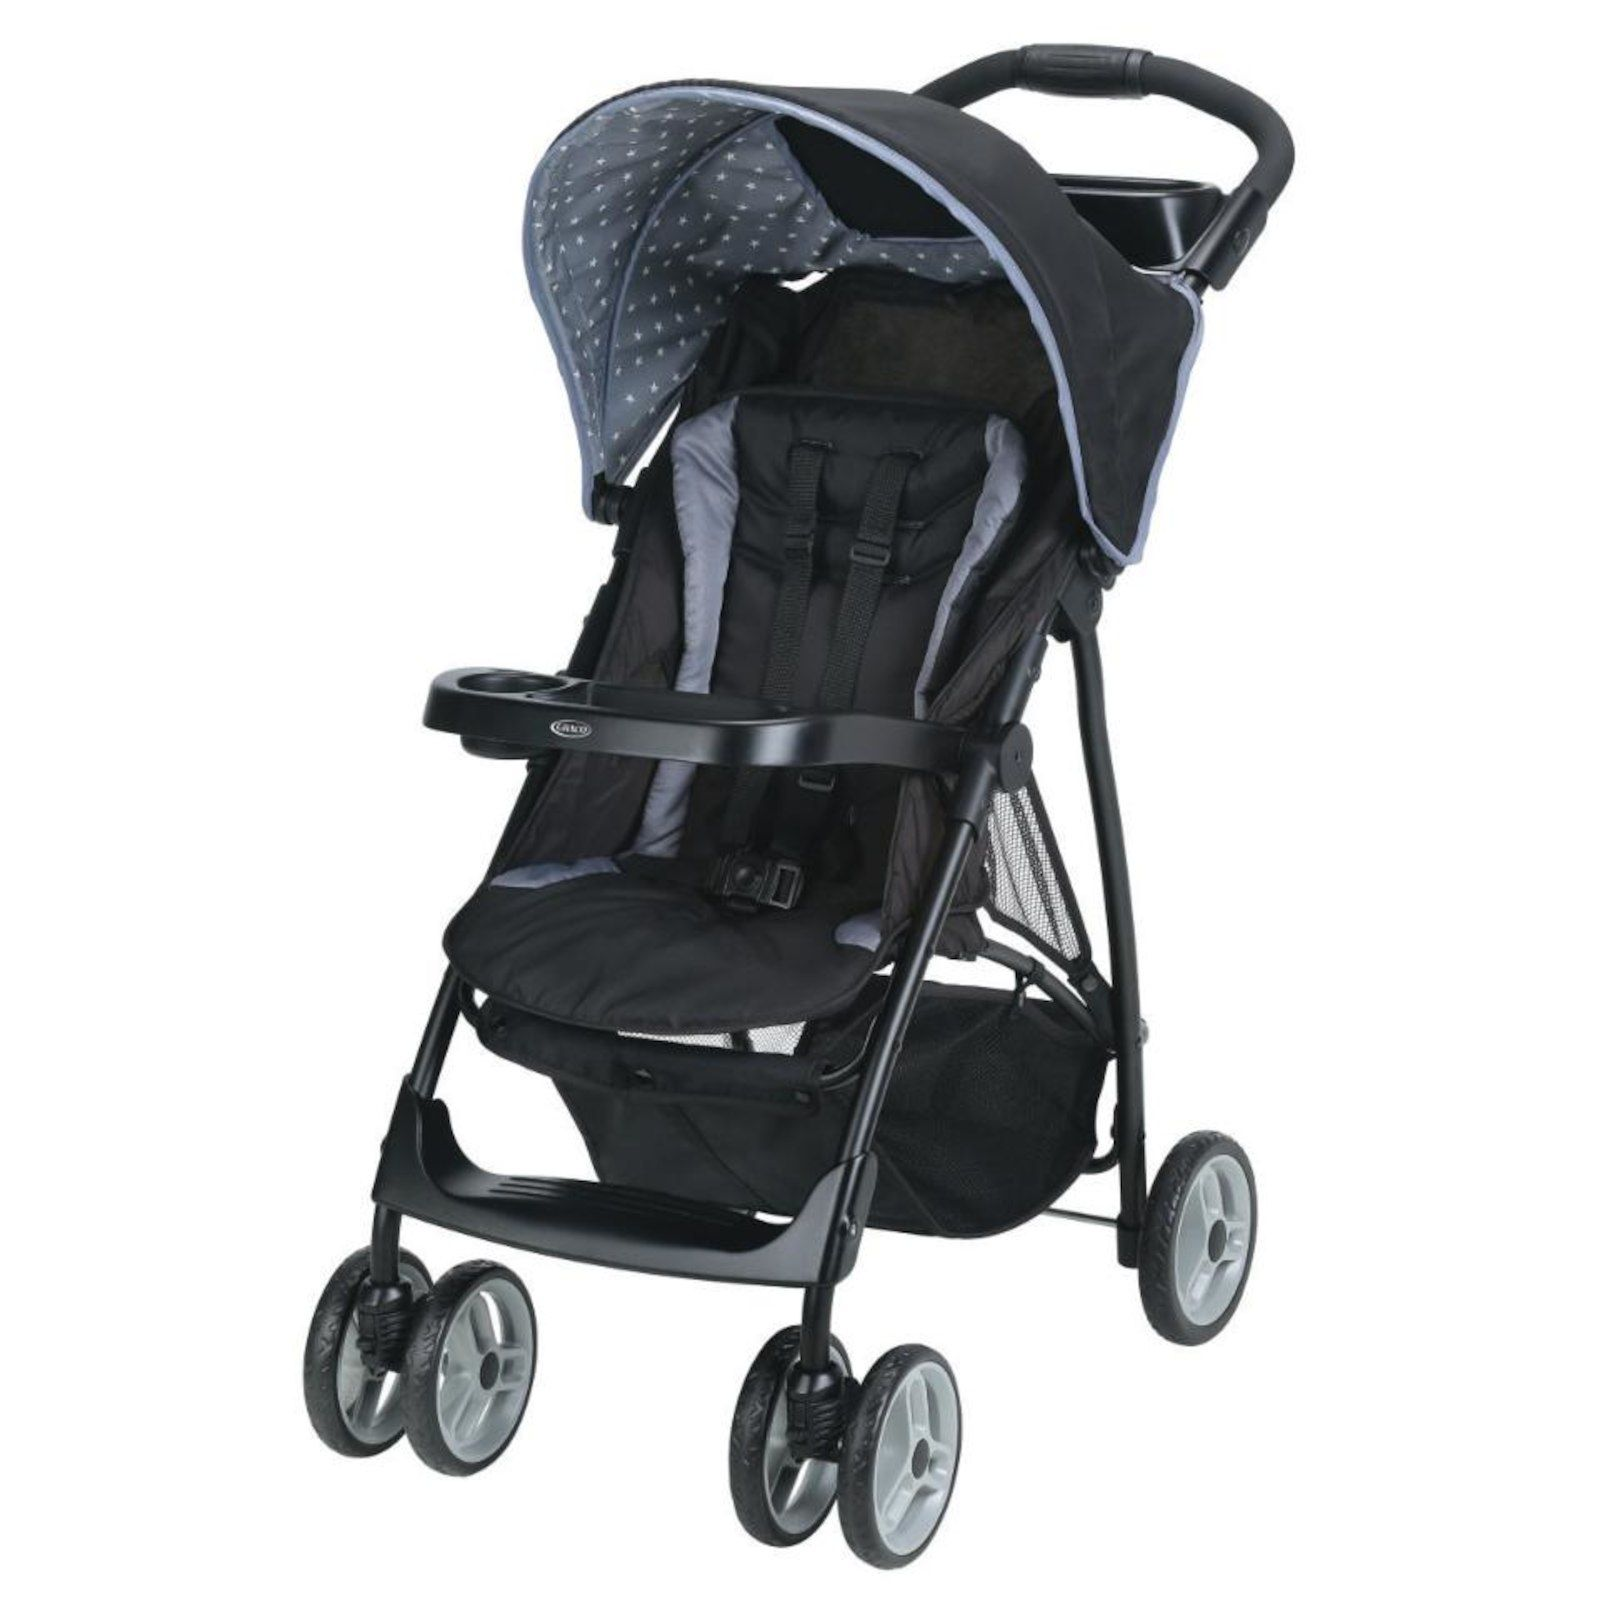 The Graco(R) LiteRider(R) LX is an ultralightweight